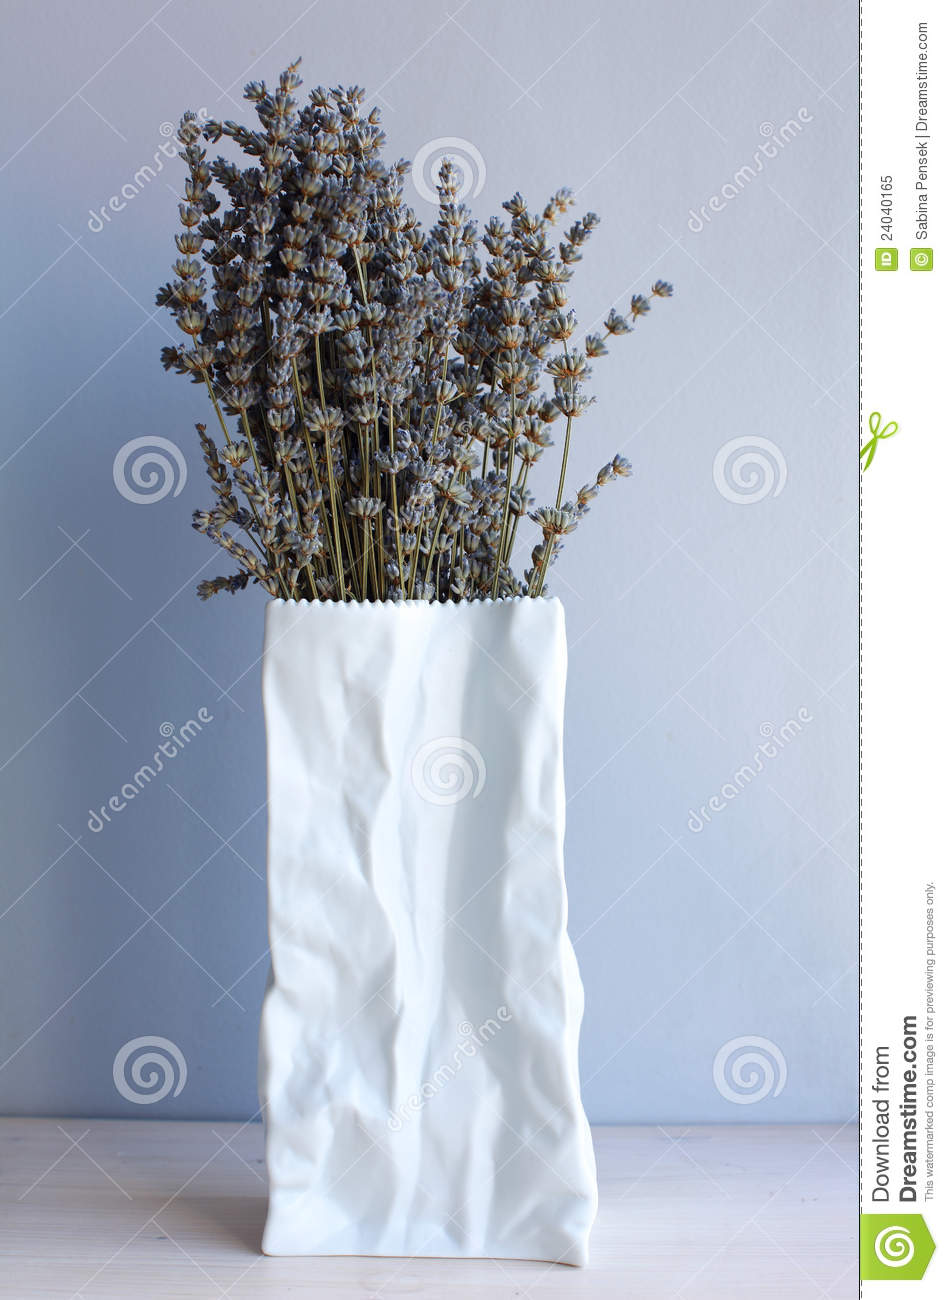 Lavender Flowers In Paper Bag Vase Royalty Free Stock